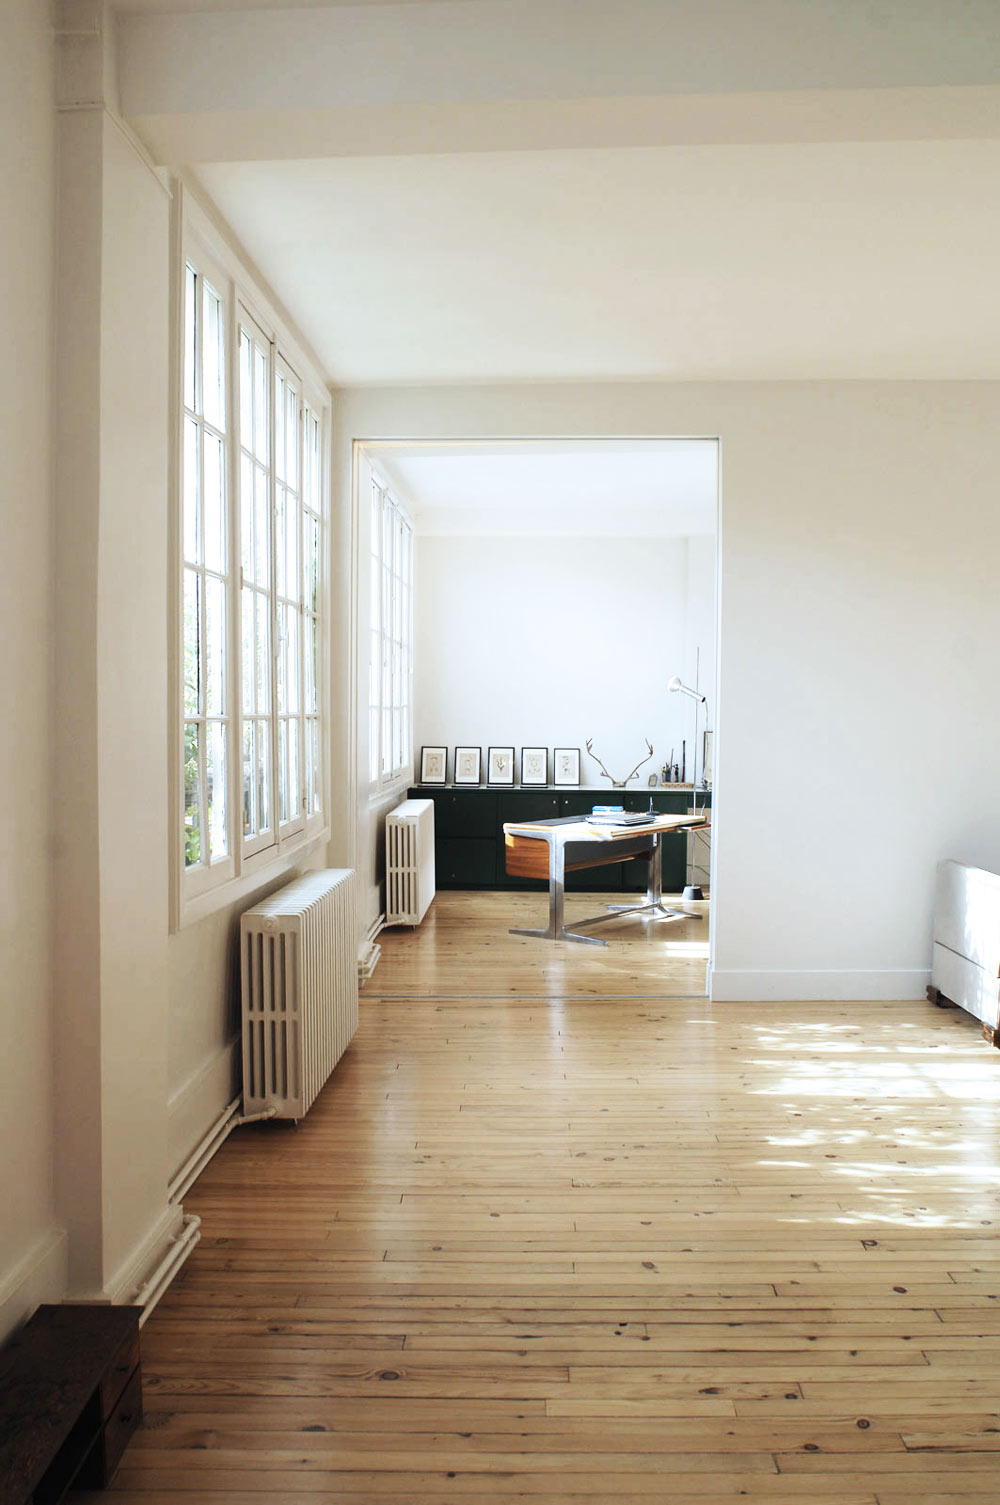 oracle, fox, sunday, sanctuary, timber, minimalist, house, paris, natural, light, bay, windows, photo, wall